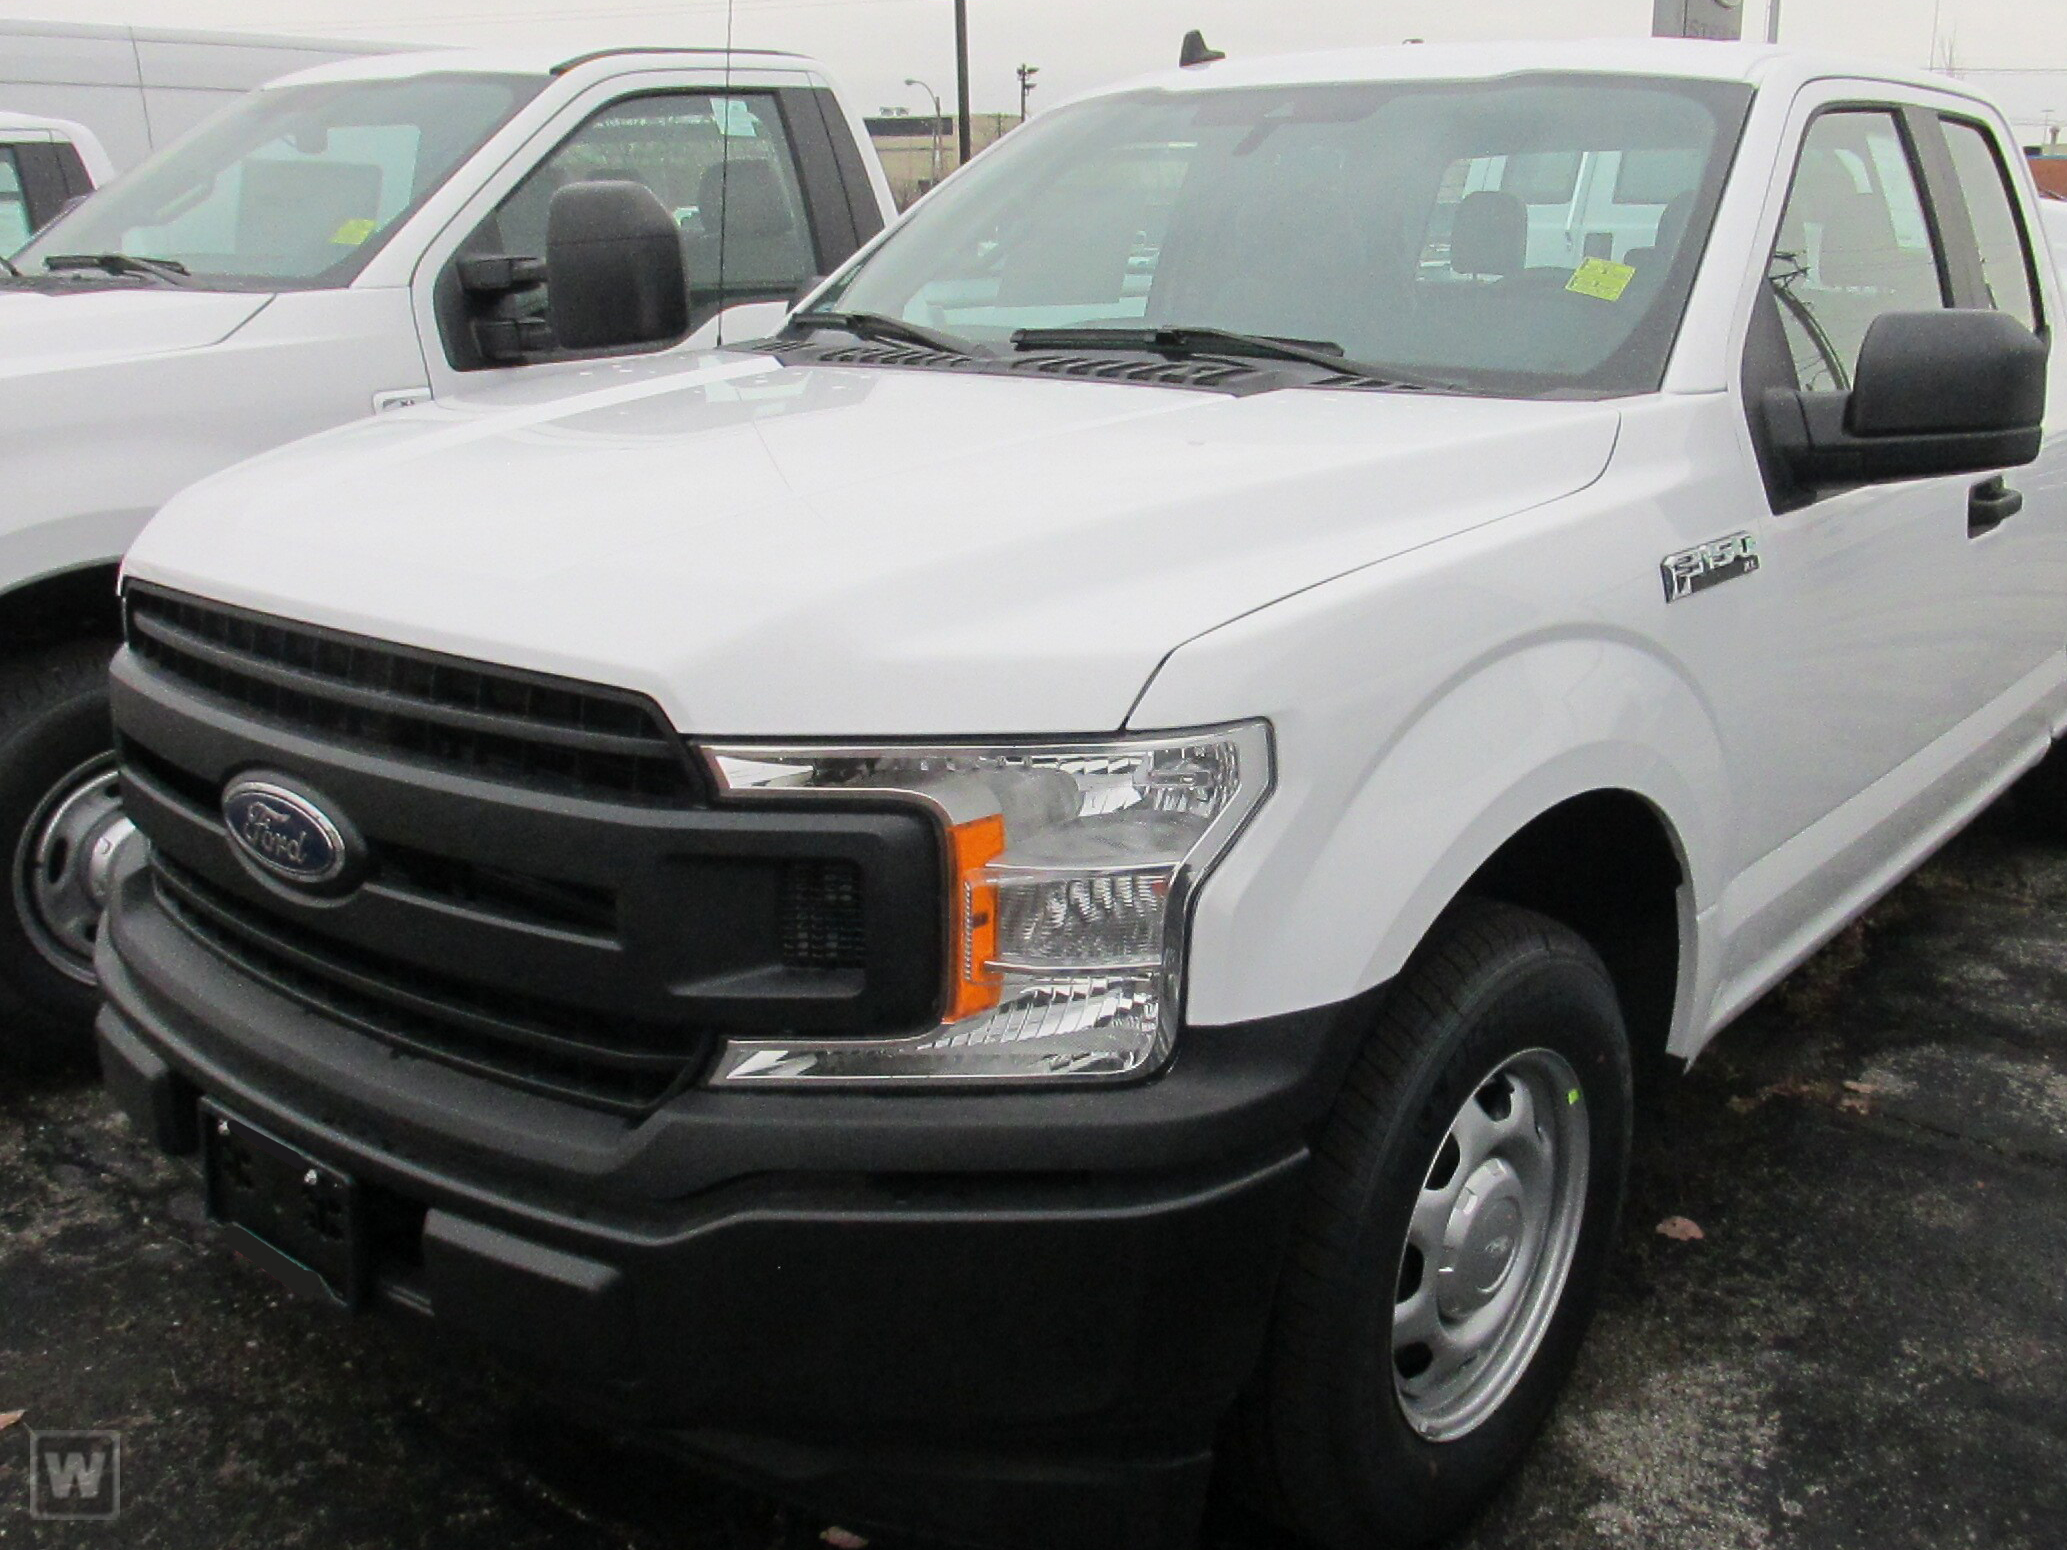 2020 F-150 Super Cab 4x4, Pickup #L189 - photo 1